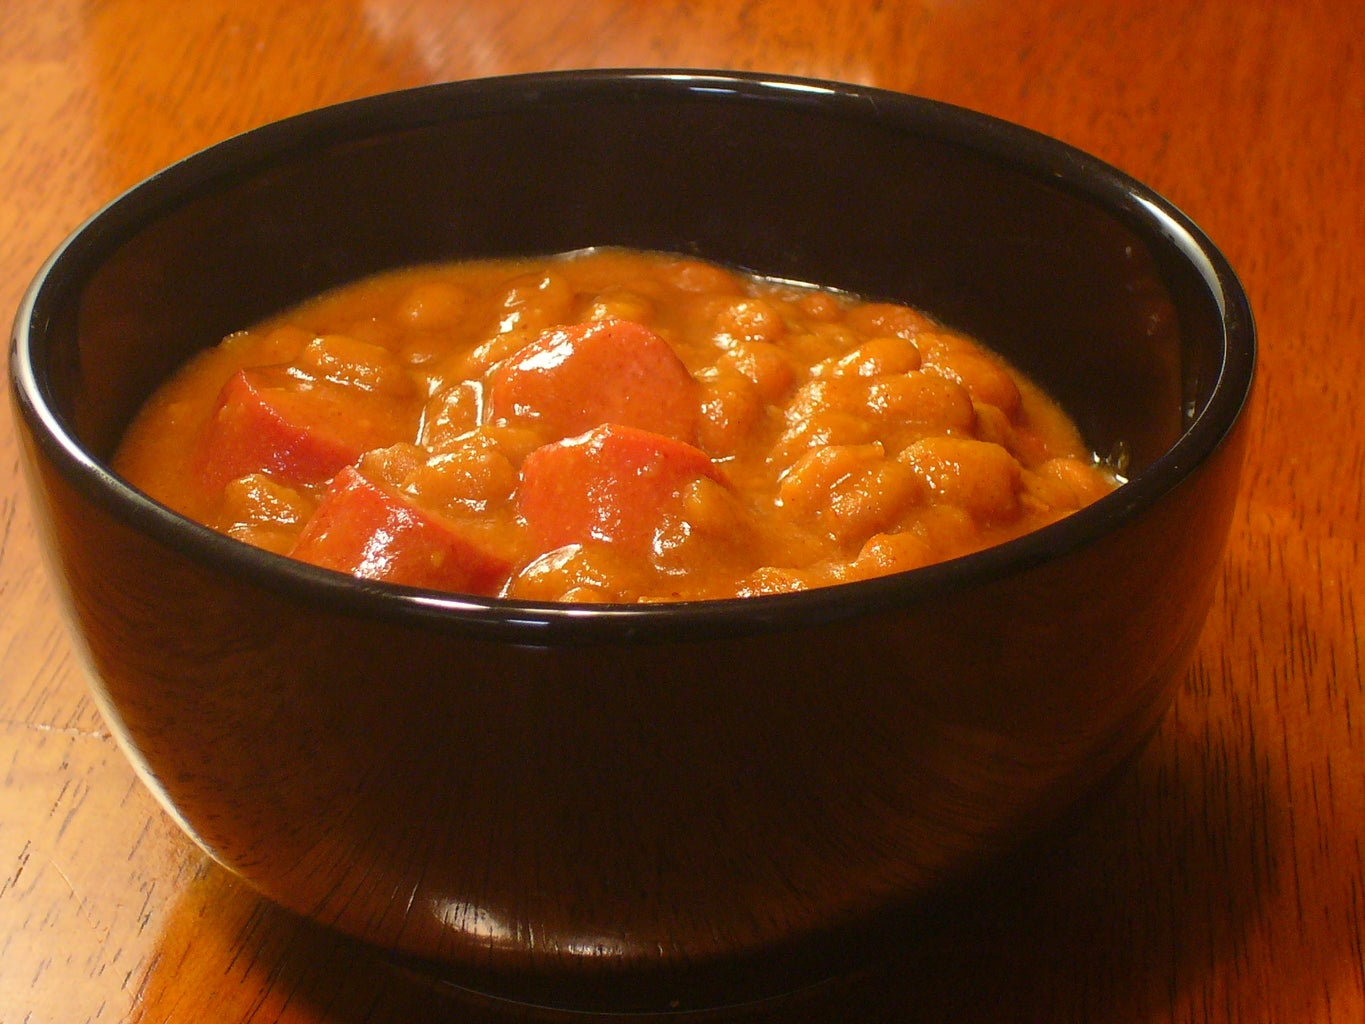 [Collegiate Meals] Franks and Beans - a Casserole of Sorts